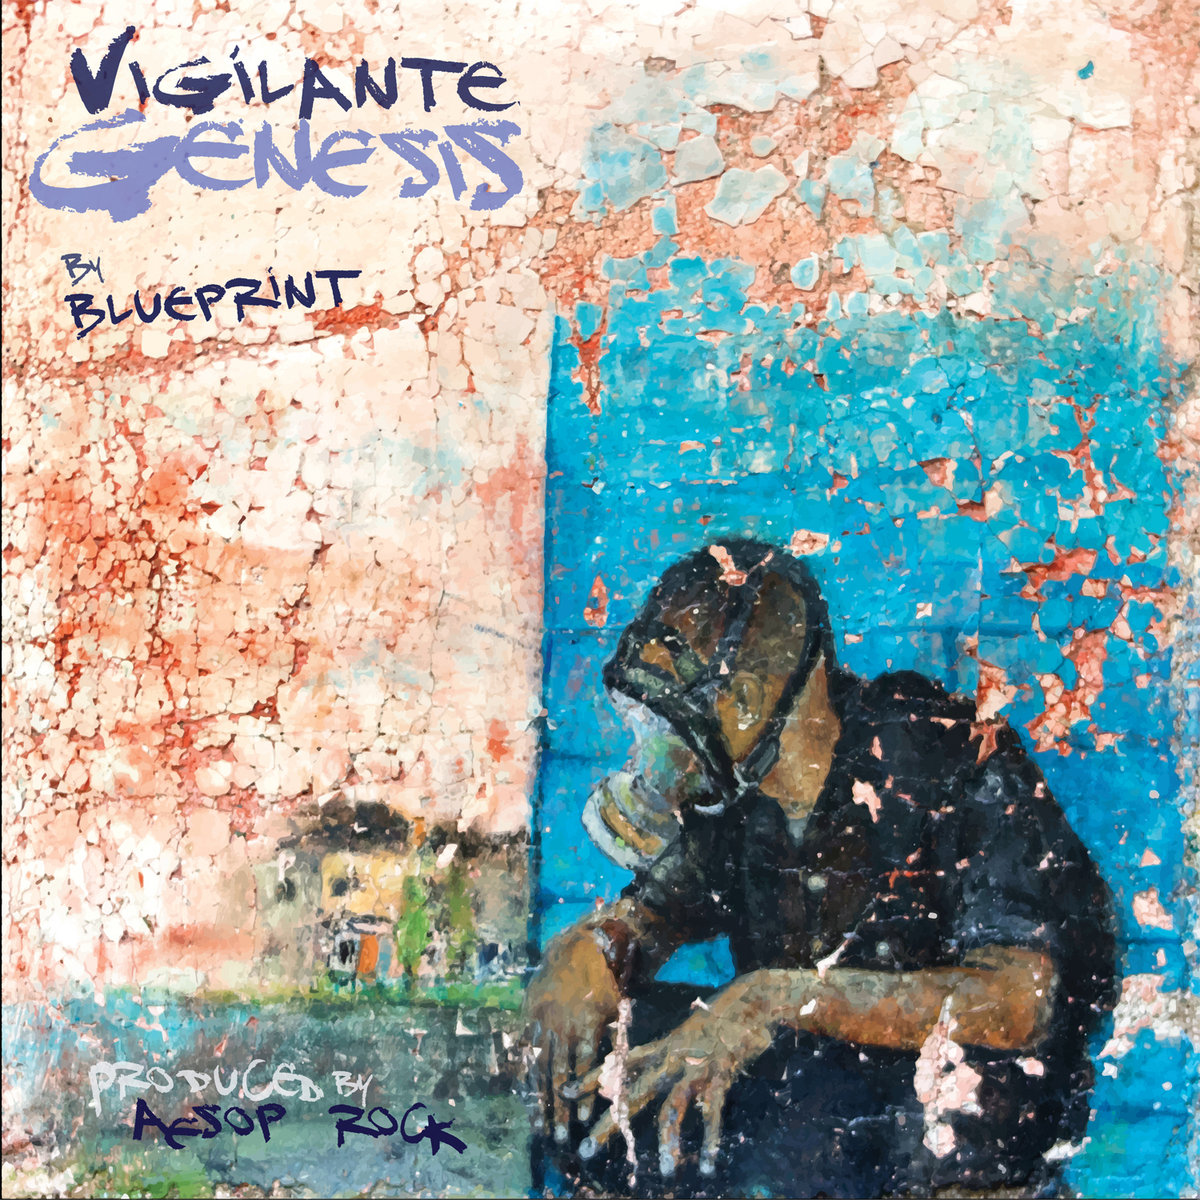 Vigilante genesis ep prod aesop rock deluxe digital version by blueprint malvernweather Gallery